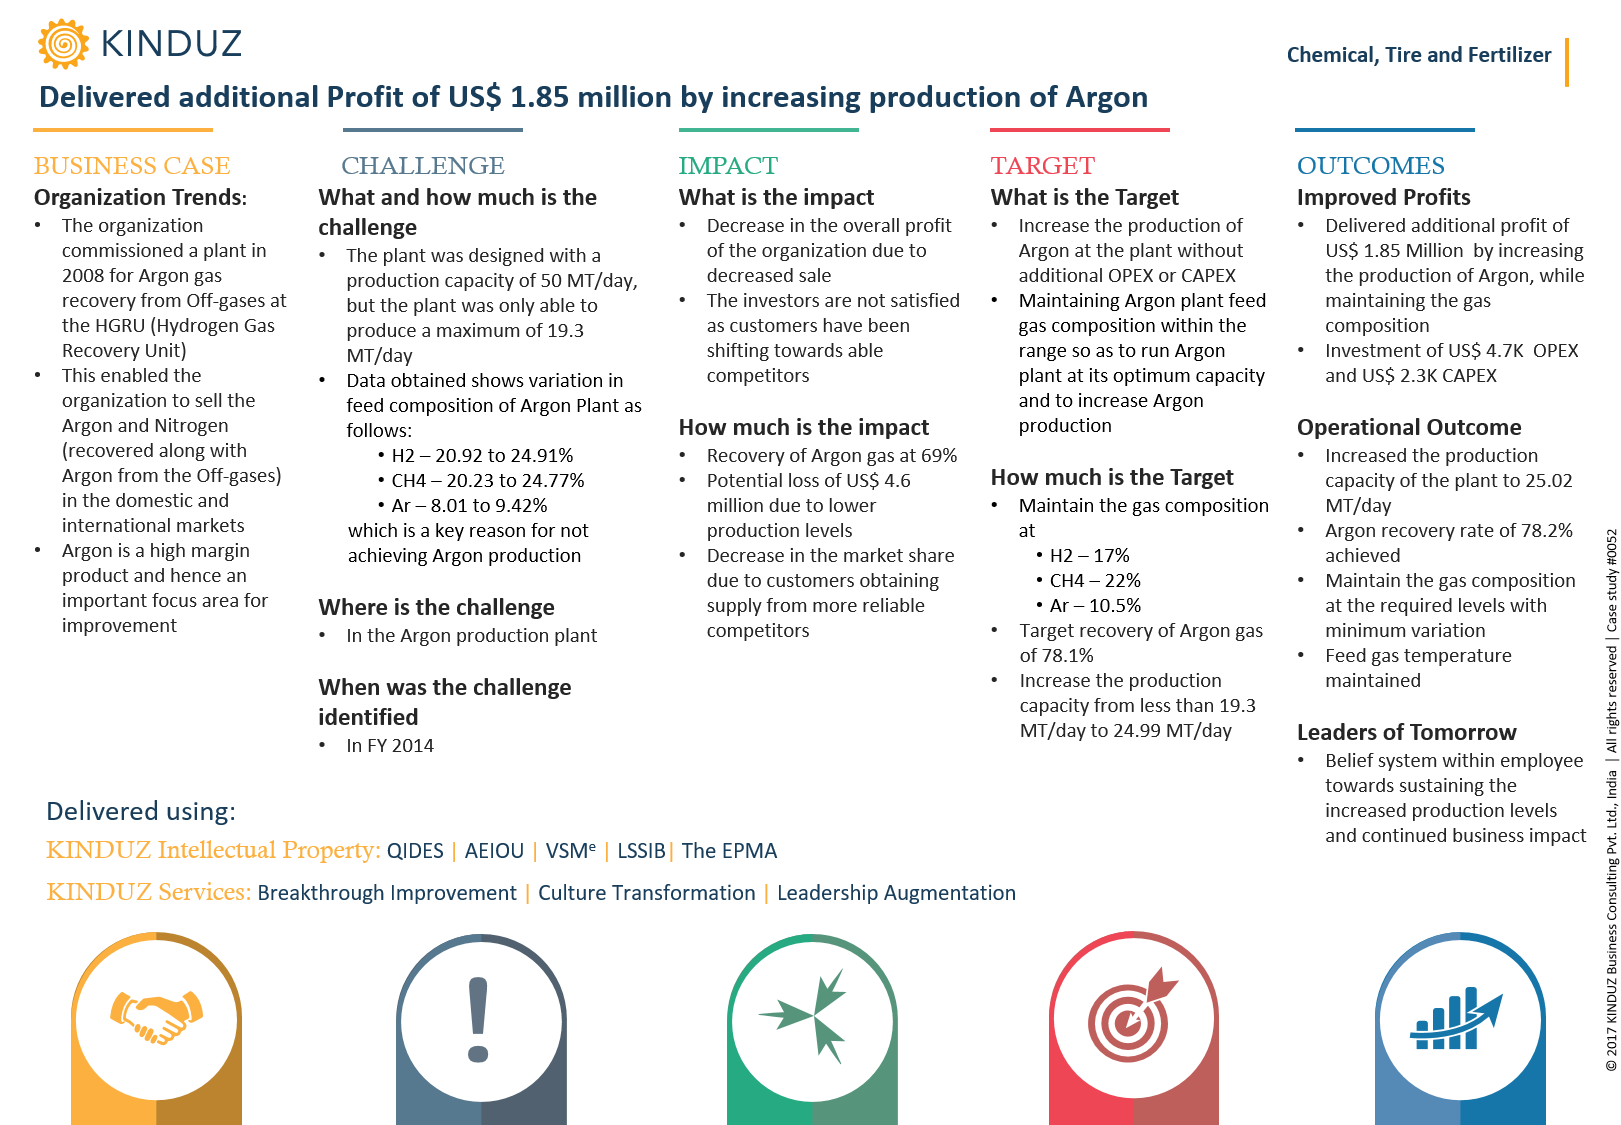 delivered-additional-profit-of-us-1.85-million-by-increasing-production-of-argon